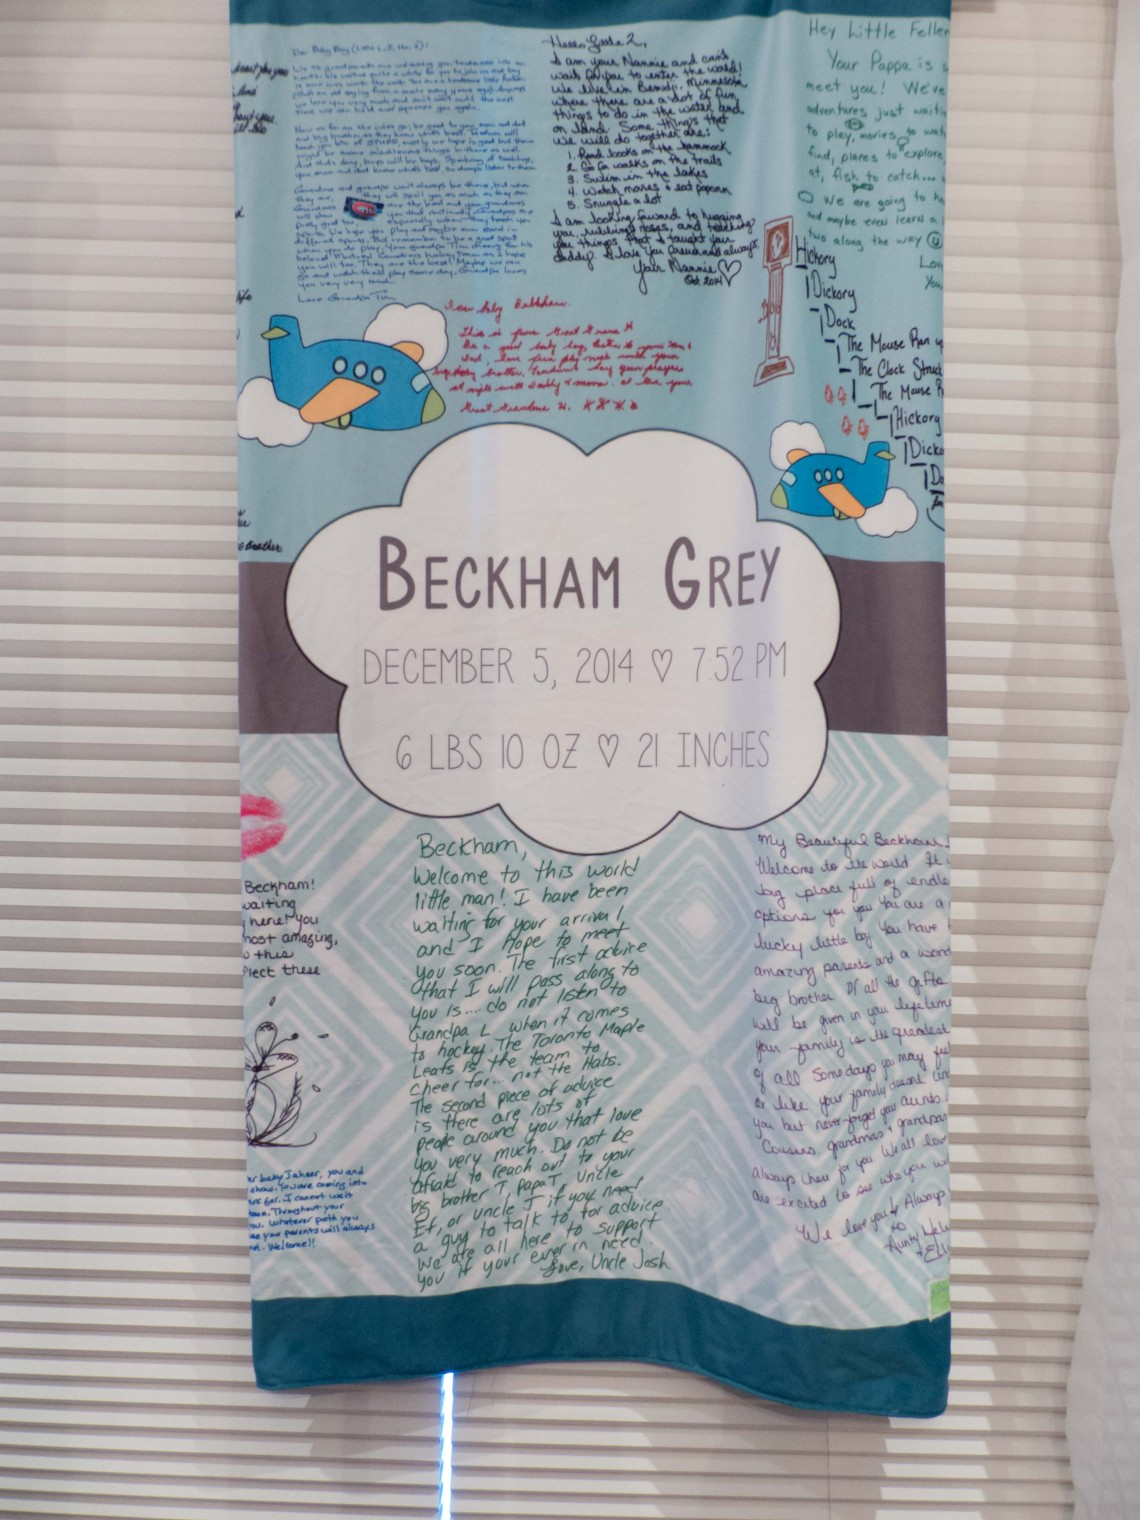 Beckham Grey Personalized Gift Blankets